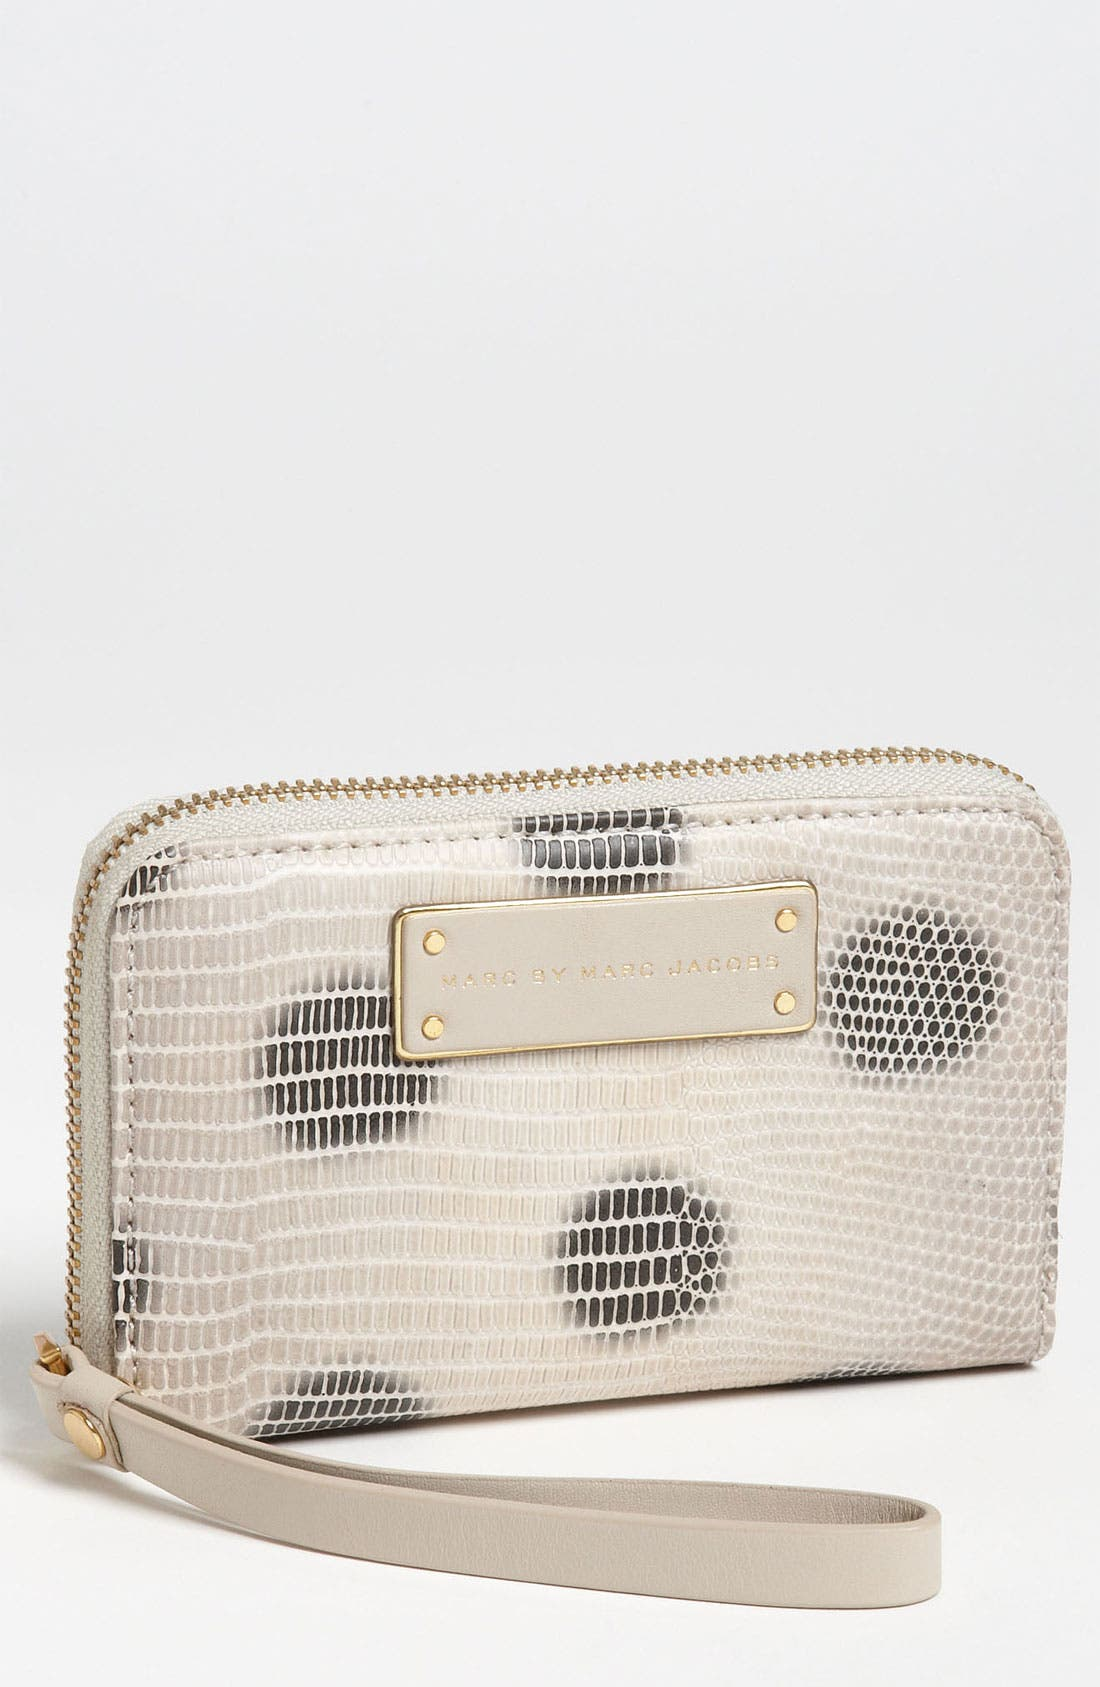 Main Image - MARC BY MARC JACOBS 'Take Me Wingman - Lizzie Spot' Embossed Phone Wallet